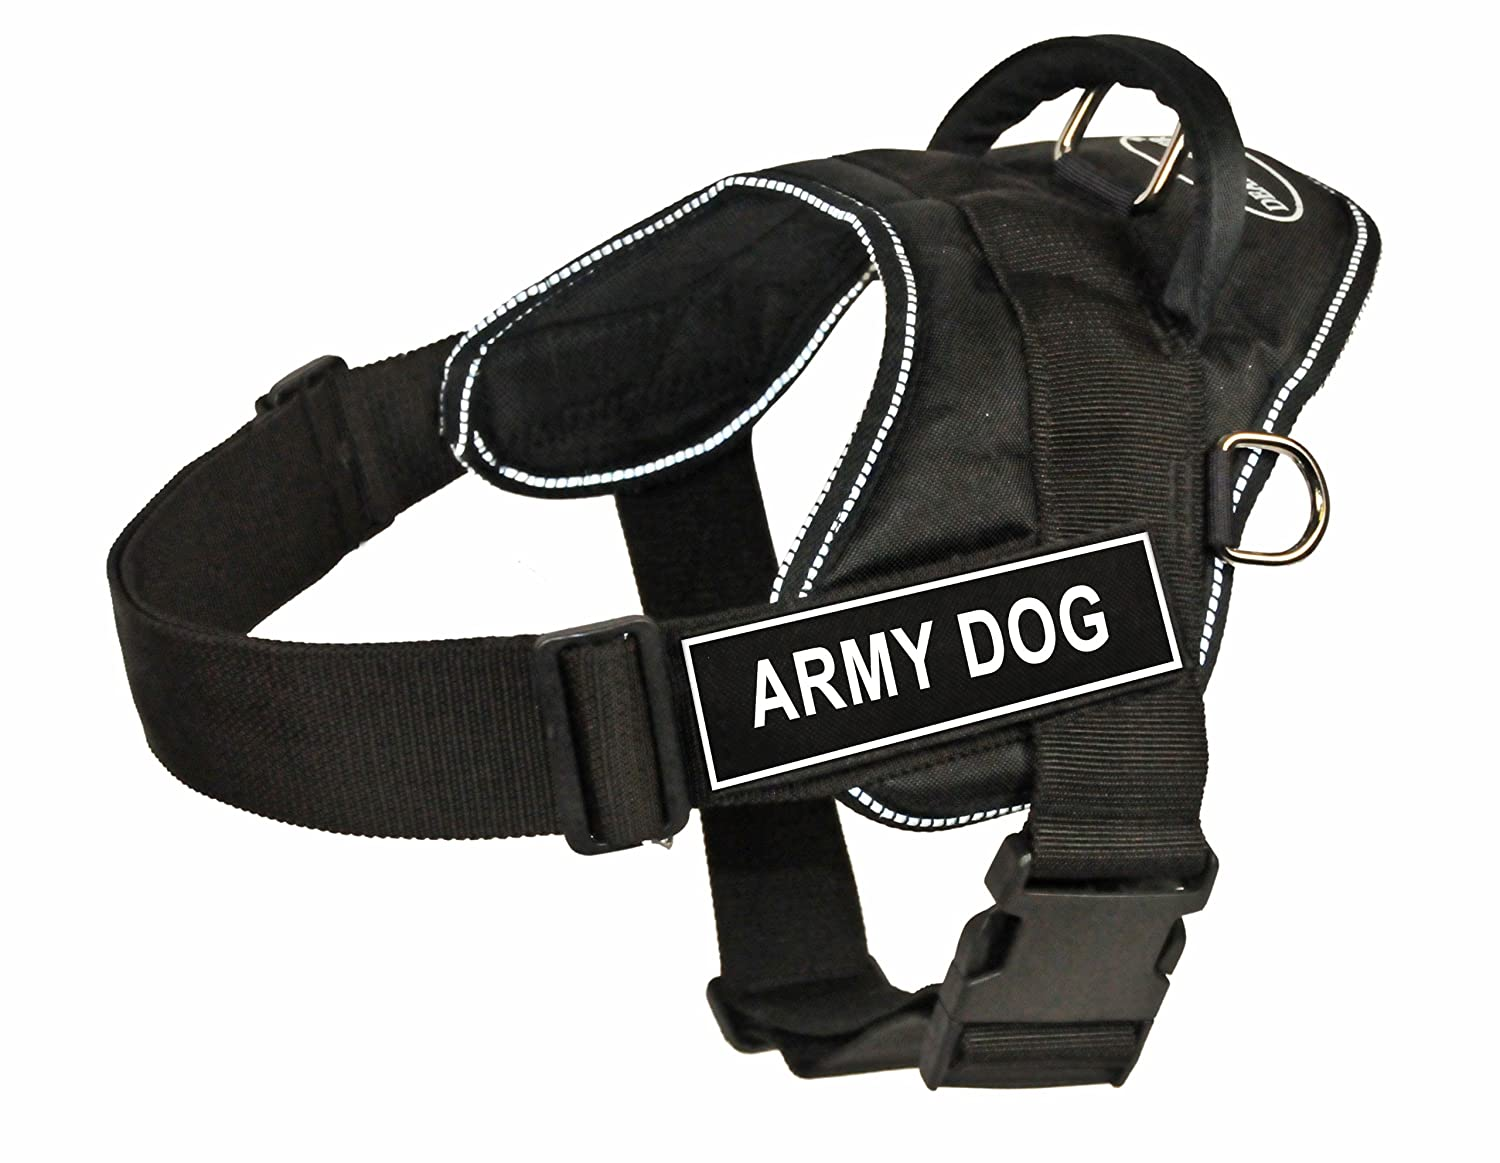 Dean & Tyler Fun Works Army Dog Harness, X-Large, Fits Girth Size  34-Inch to 47-Inch, Black with Reflective Trim